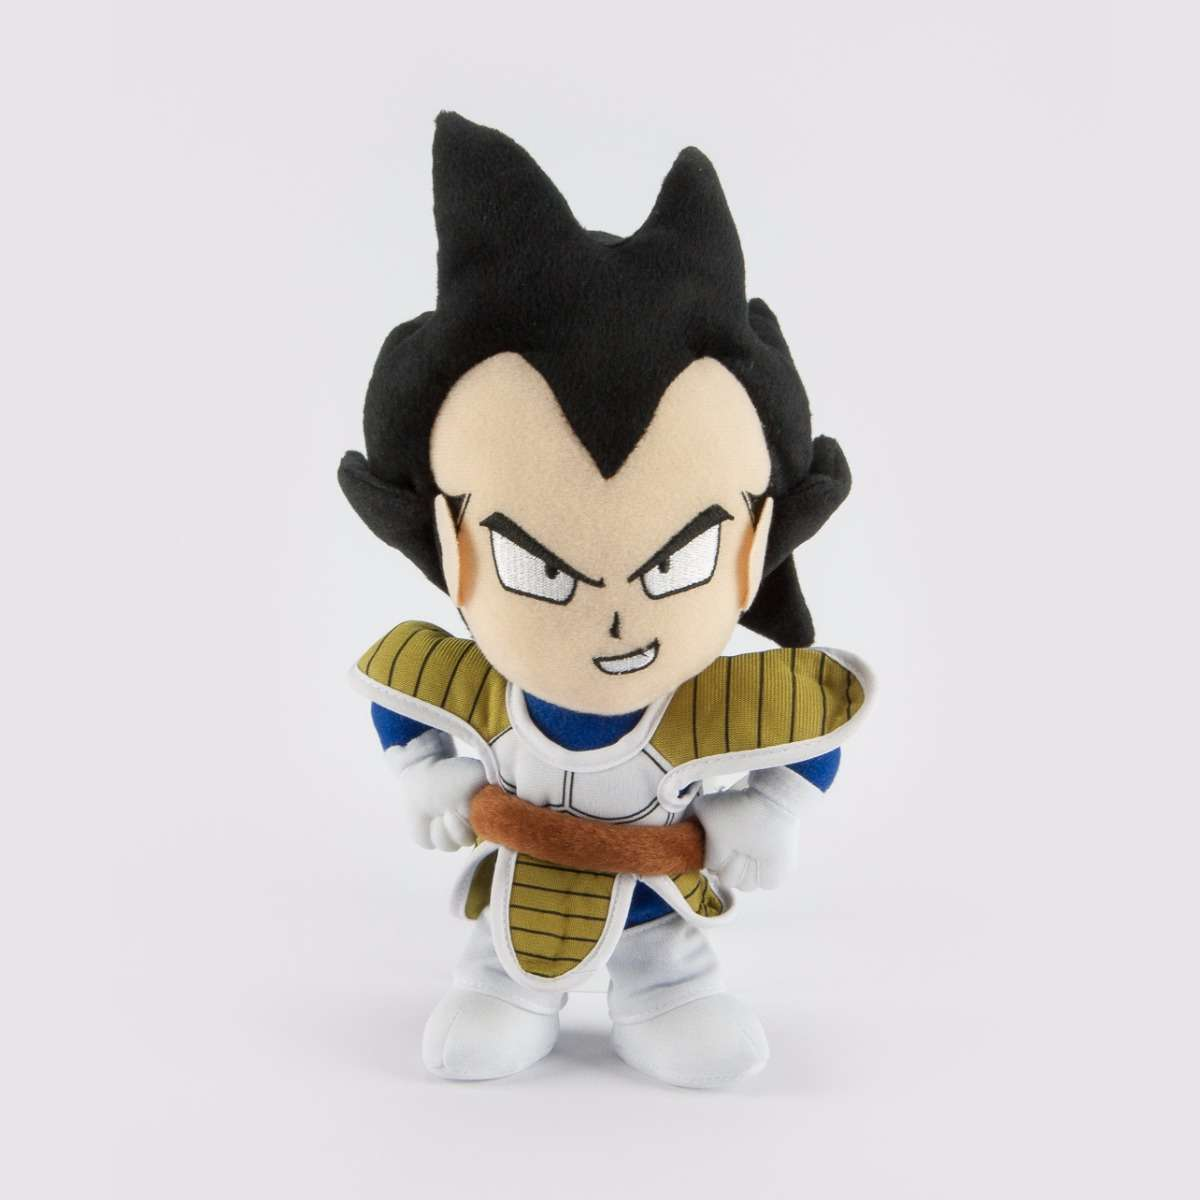 Vegeta Plush Toys & Games